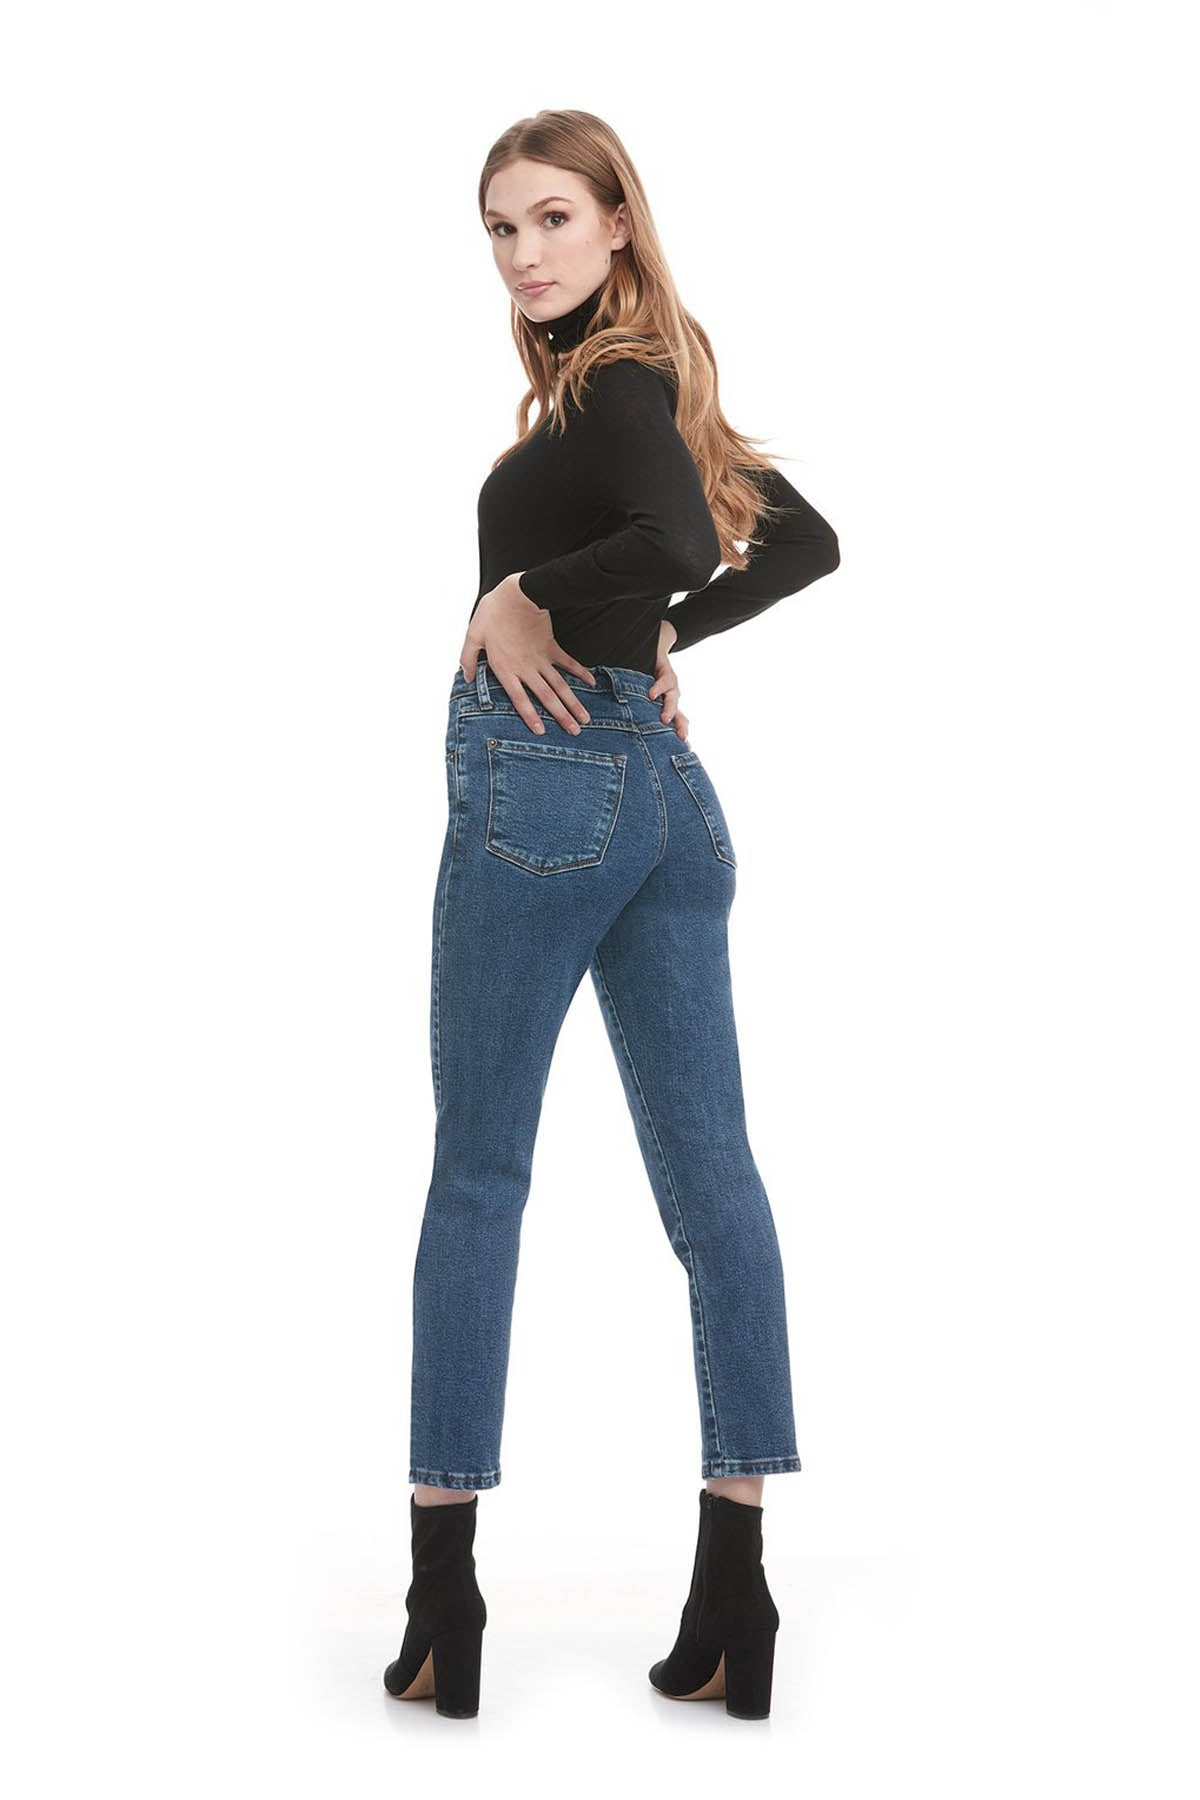 EMILY High Rise Slim Yoga Jean, Barbuda, back view, high rise, 28 inch inseam, slim fit, 90s style, sizes 24-34, made in Canada